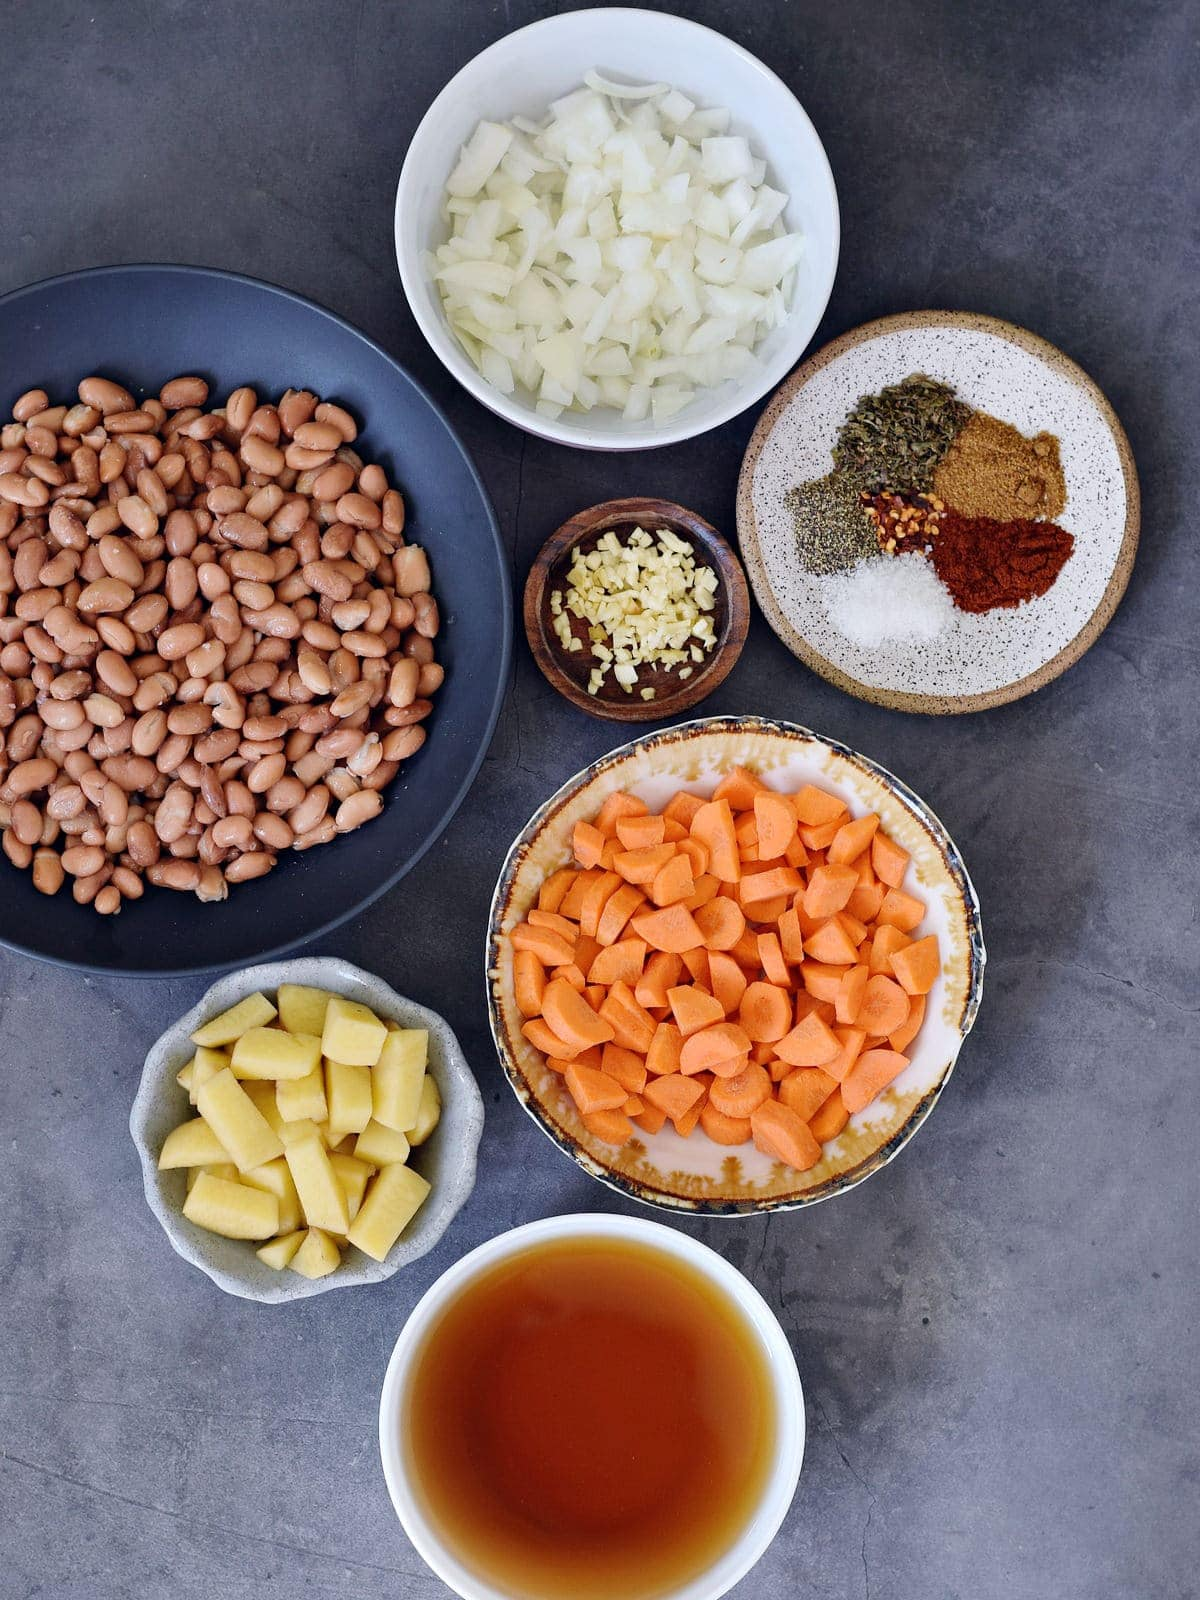 pinto beans, onion, garlic, carrot, potato, broth, and spices and gray backdrop